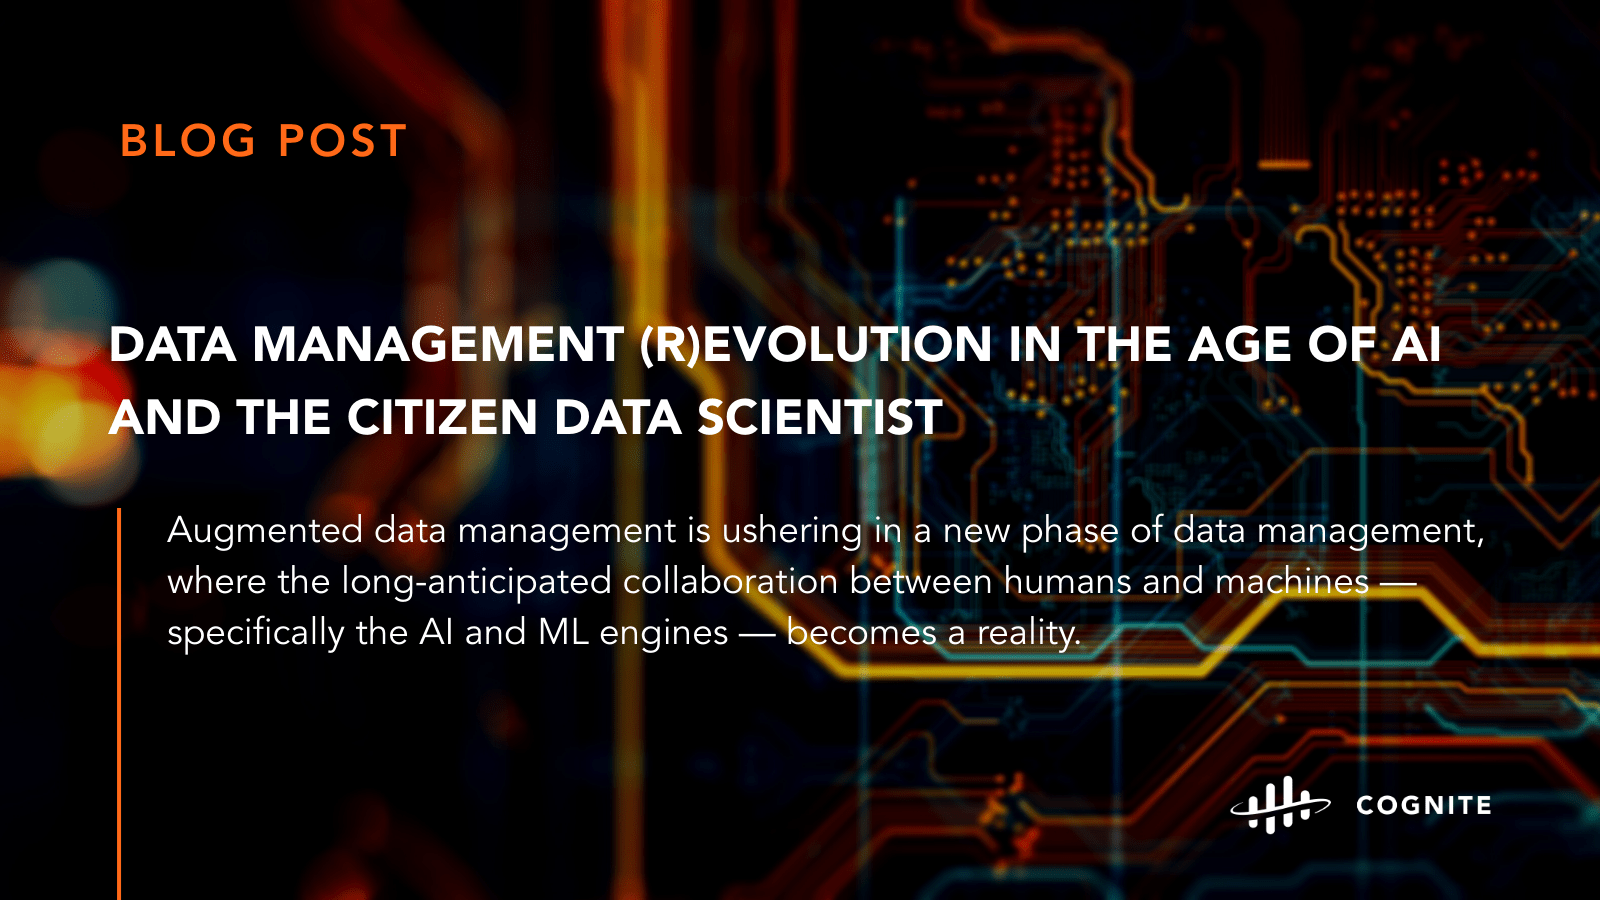 Data management (r)evolution in the age of AI and the citizen data scientist